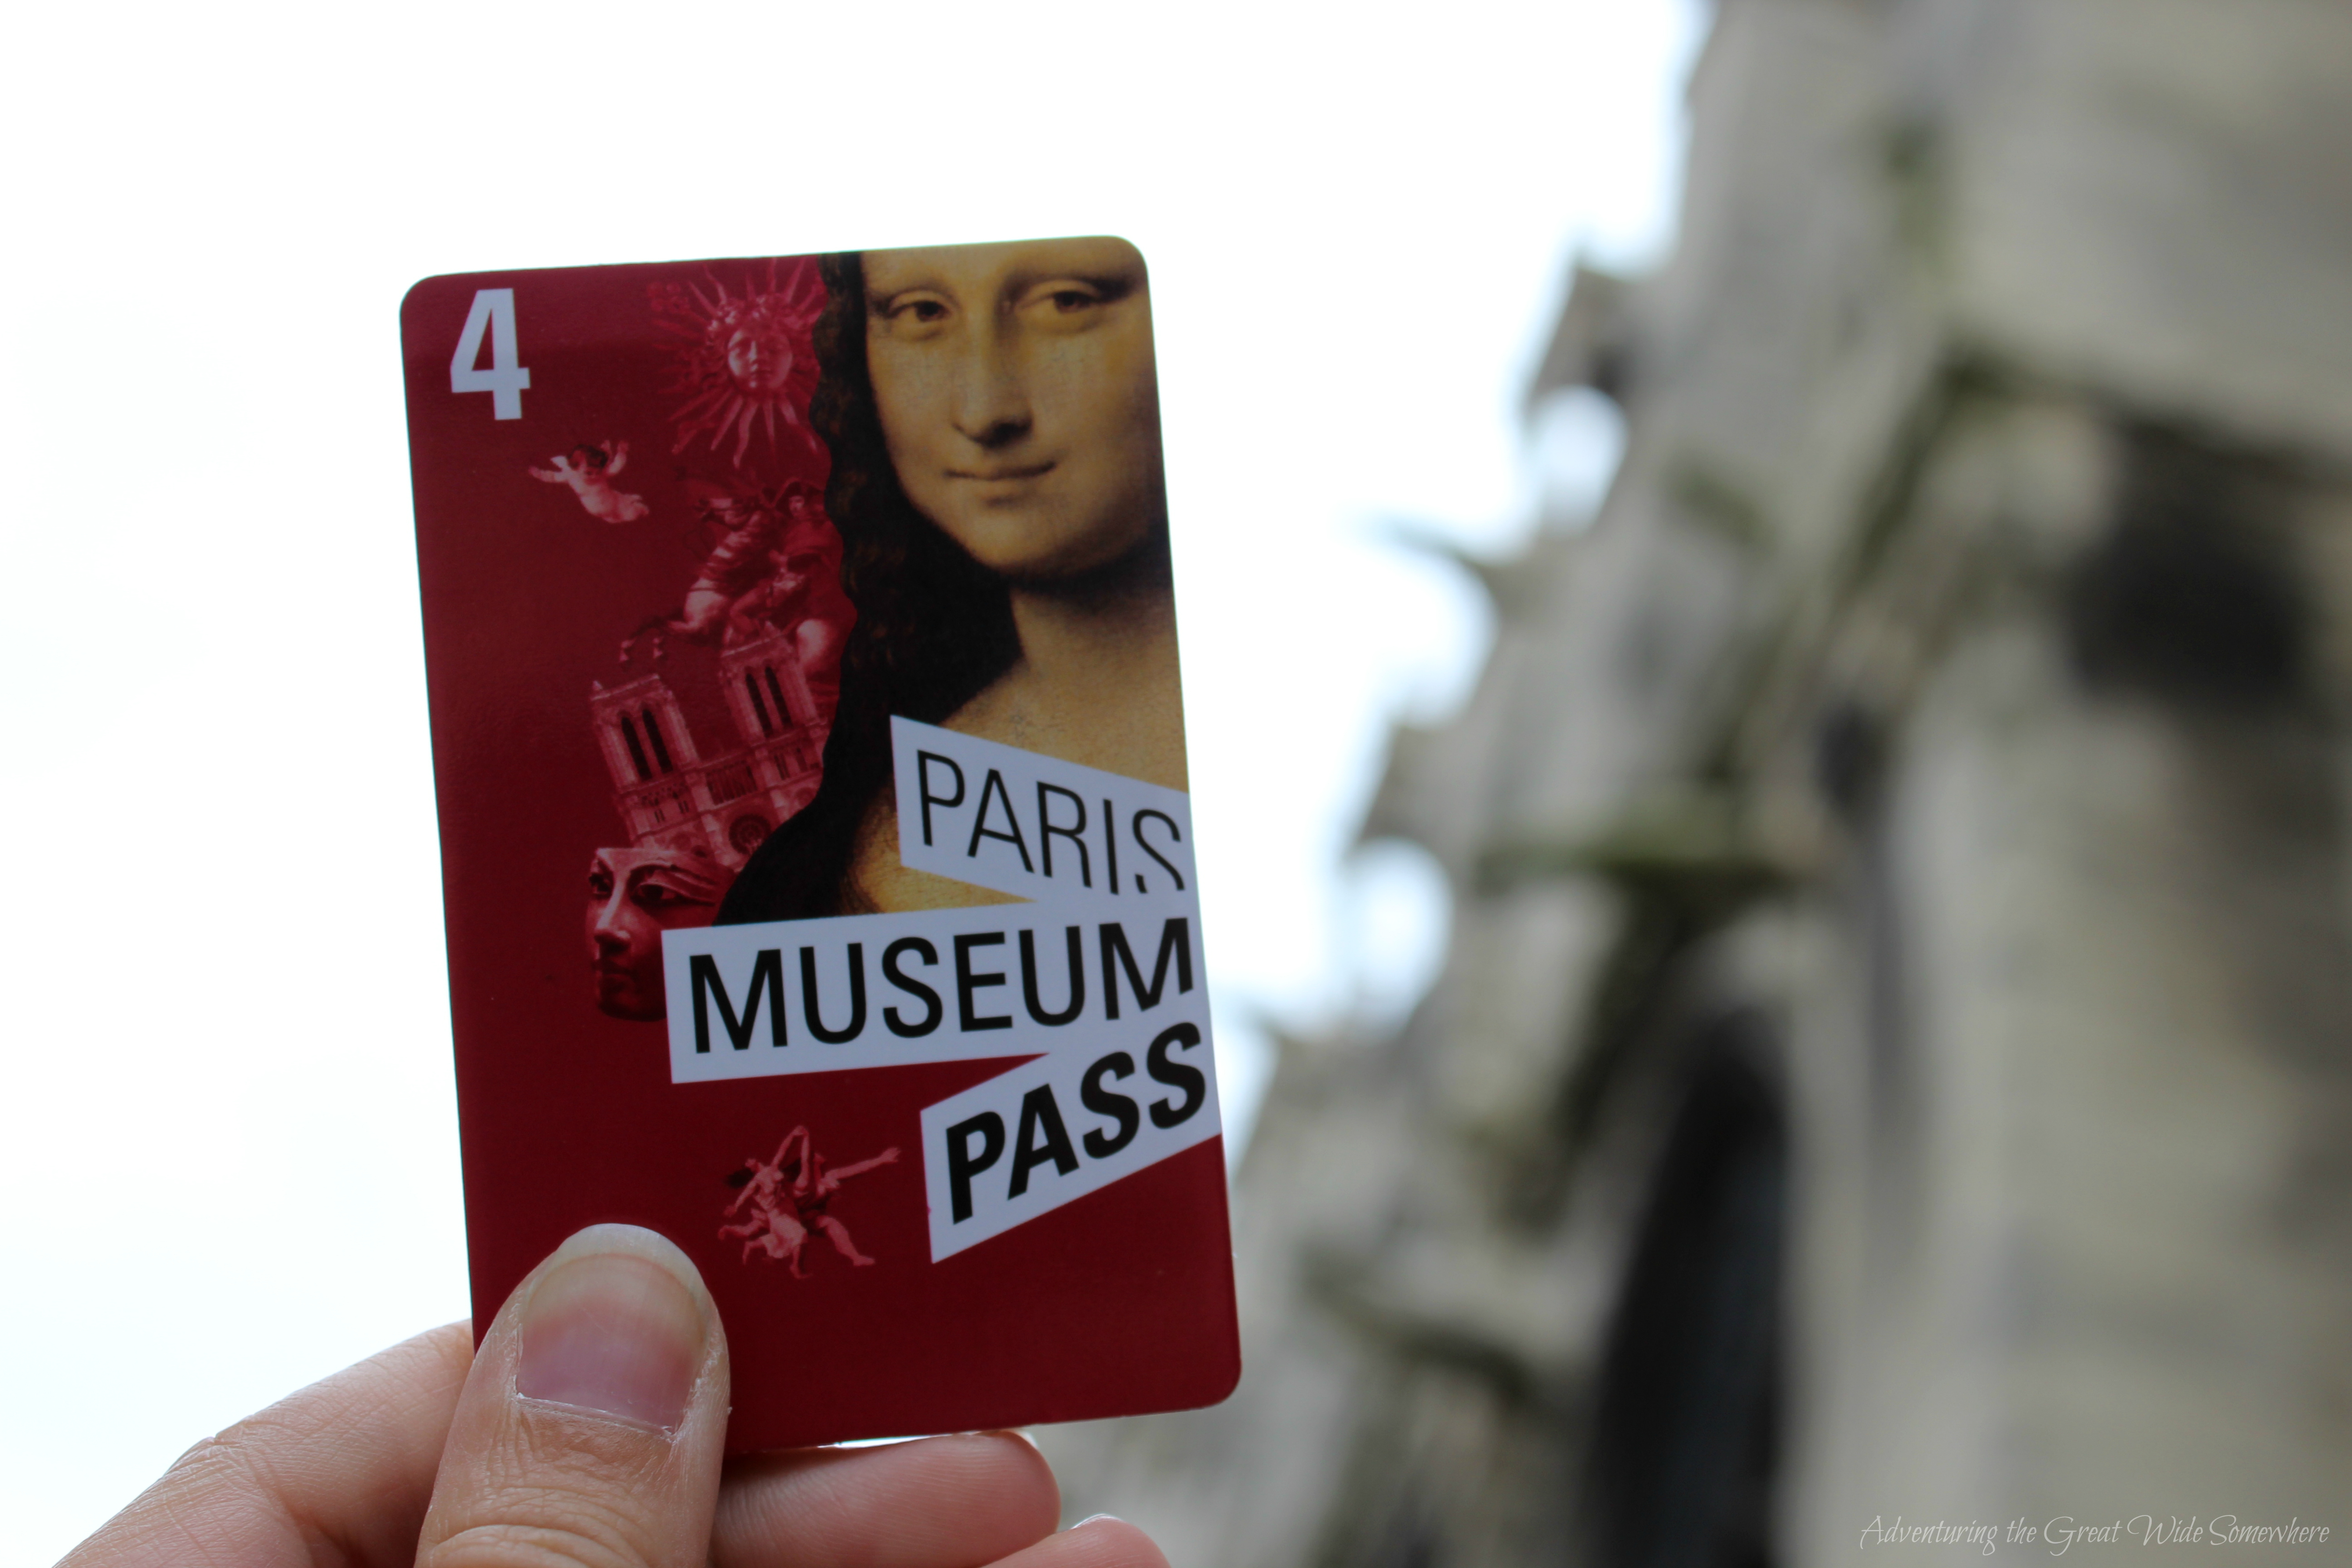 The Paris Museum Pass: Is It Worth It?